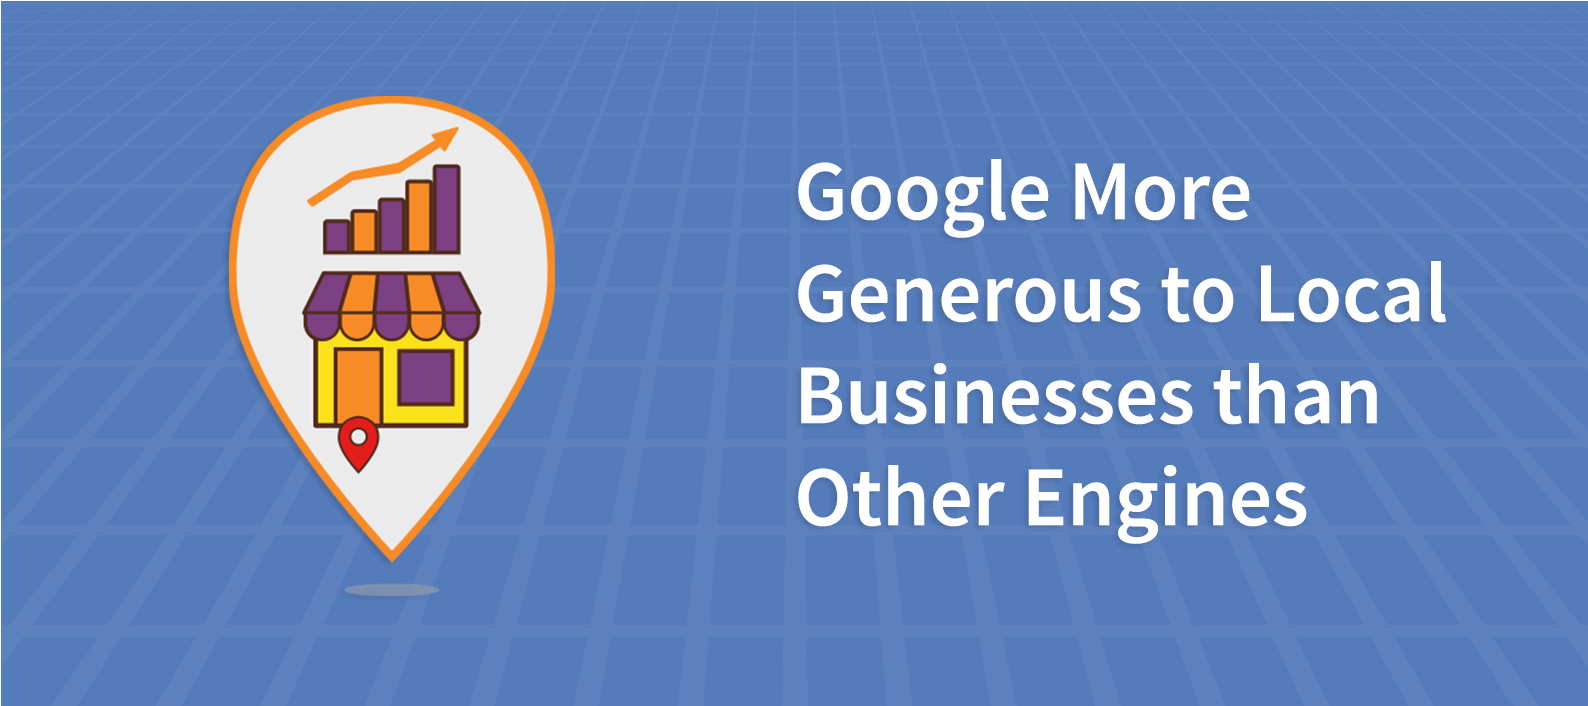 Google More Generous to Local Businesses than Other Engines